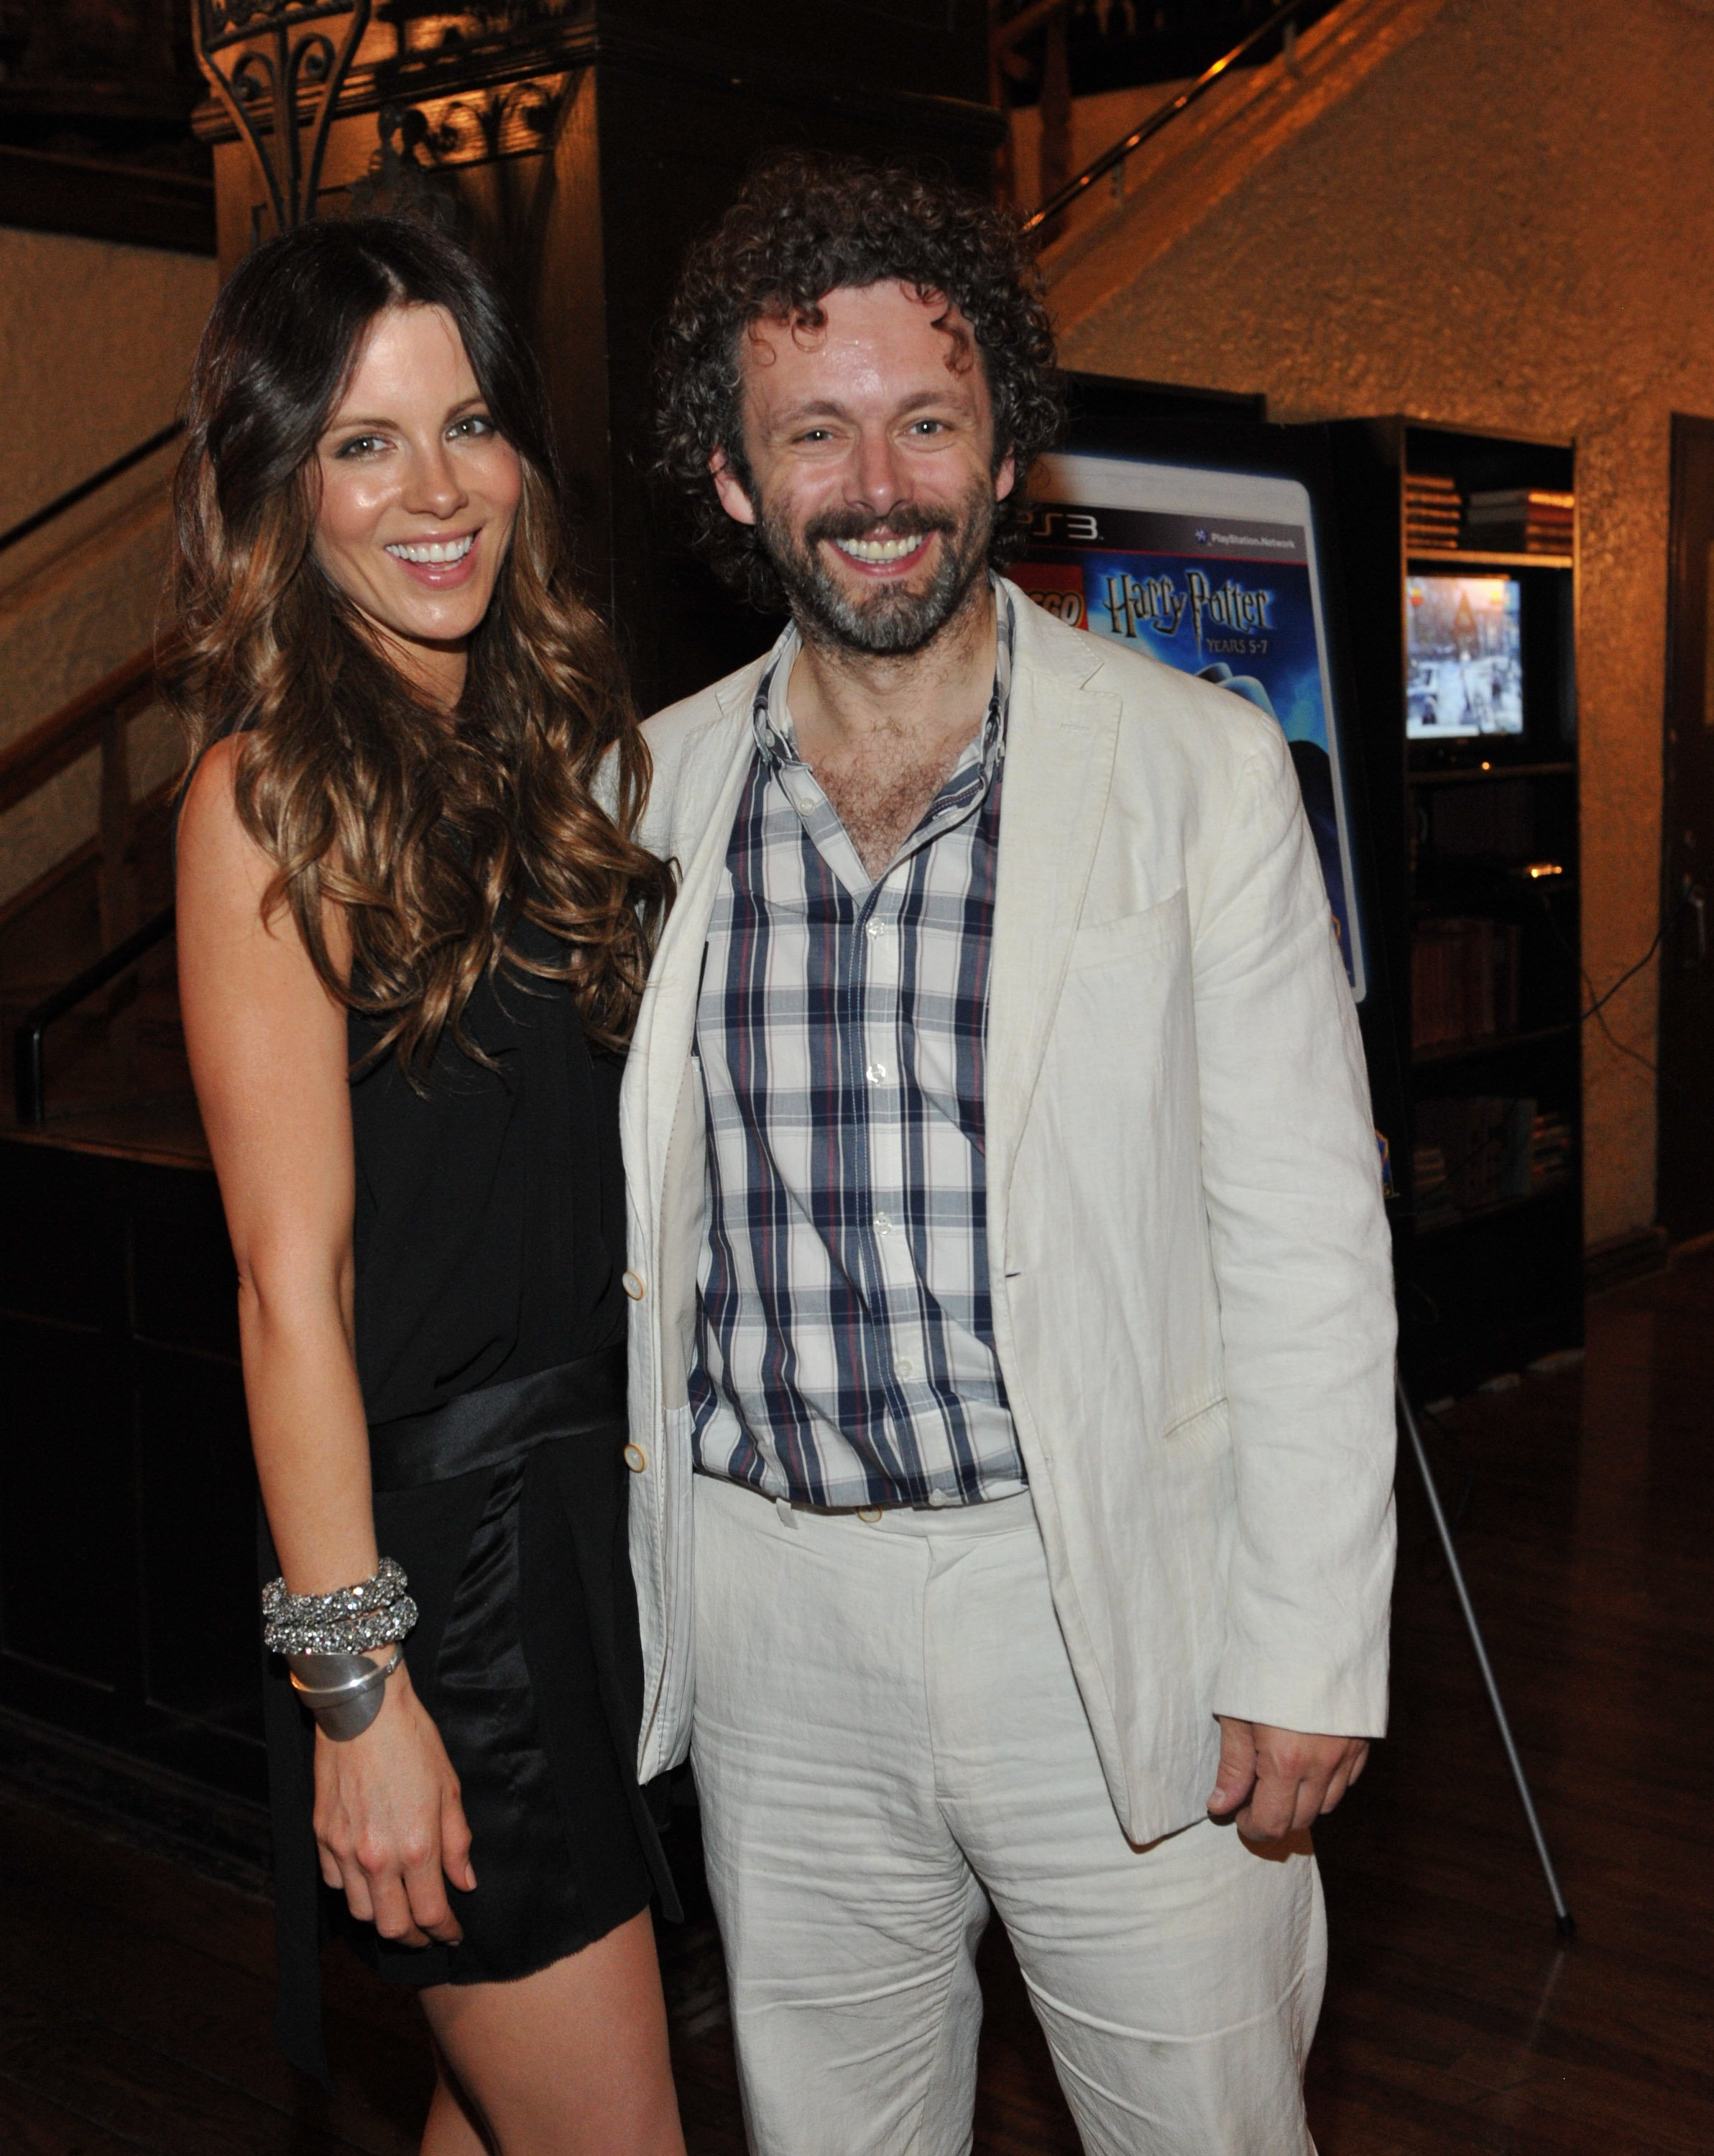 Kate Beckinsale and Michael Sheen on July 12, 2011 in Toronto, Canada | Photo: Getty Images